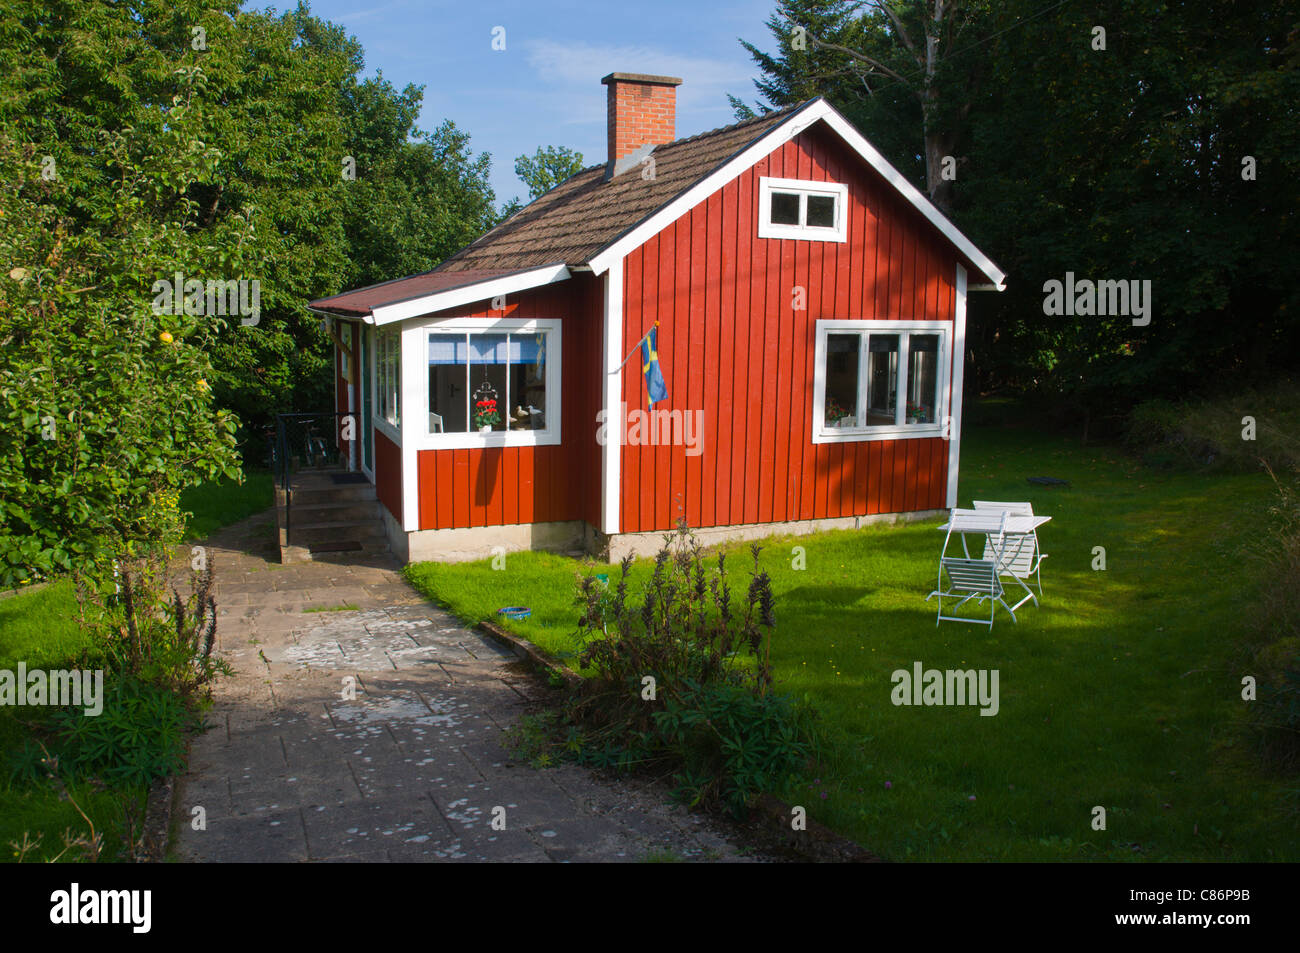 Superieur Typical Swedish Summer Holiday Home On Aspö Island In Blekinge County  Southern Sweden Europe   Stock